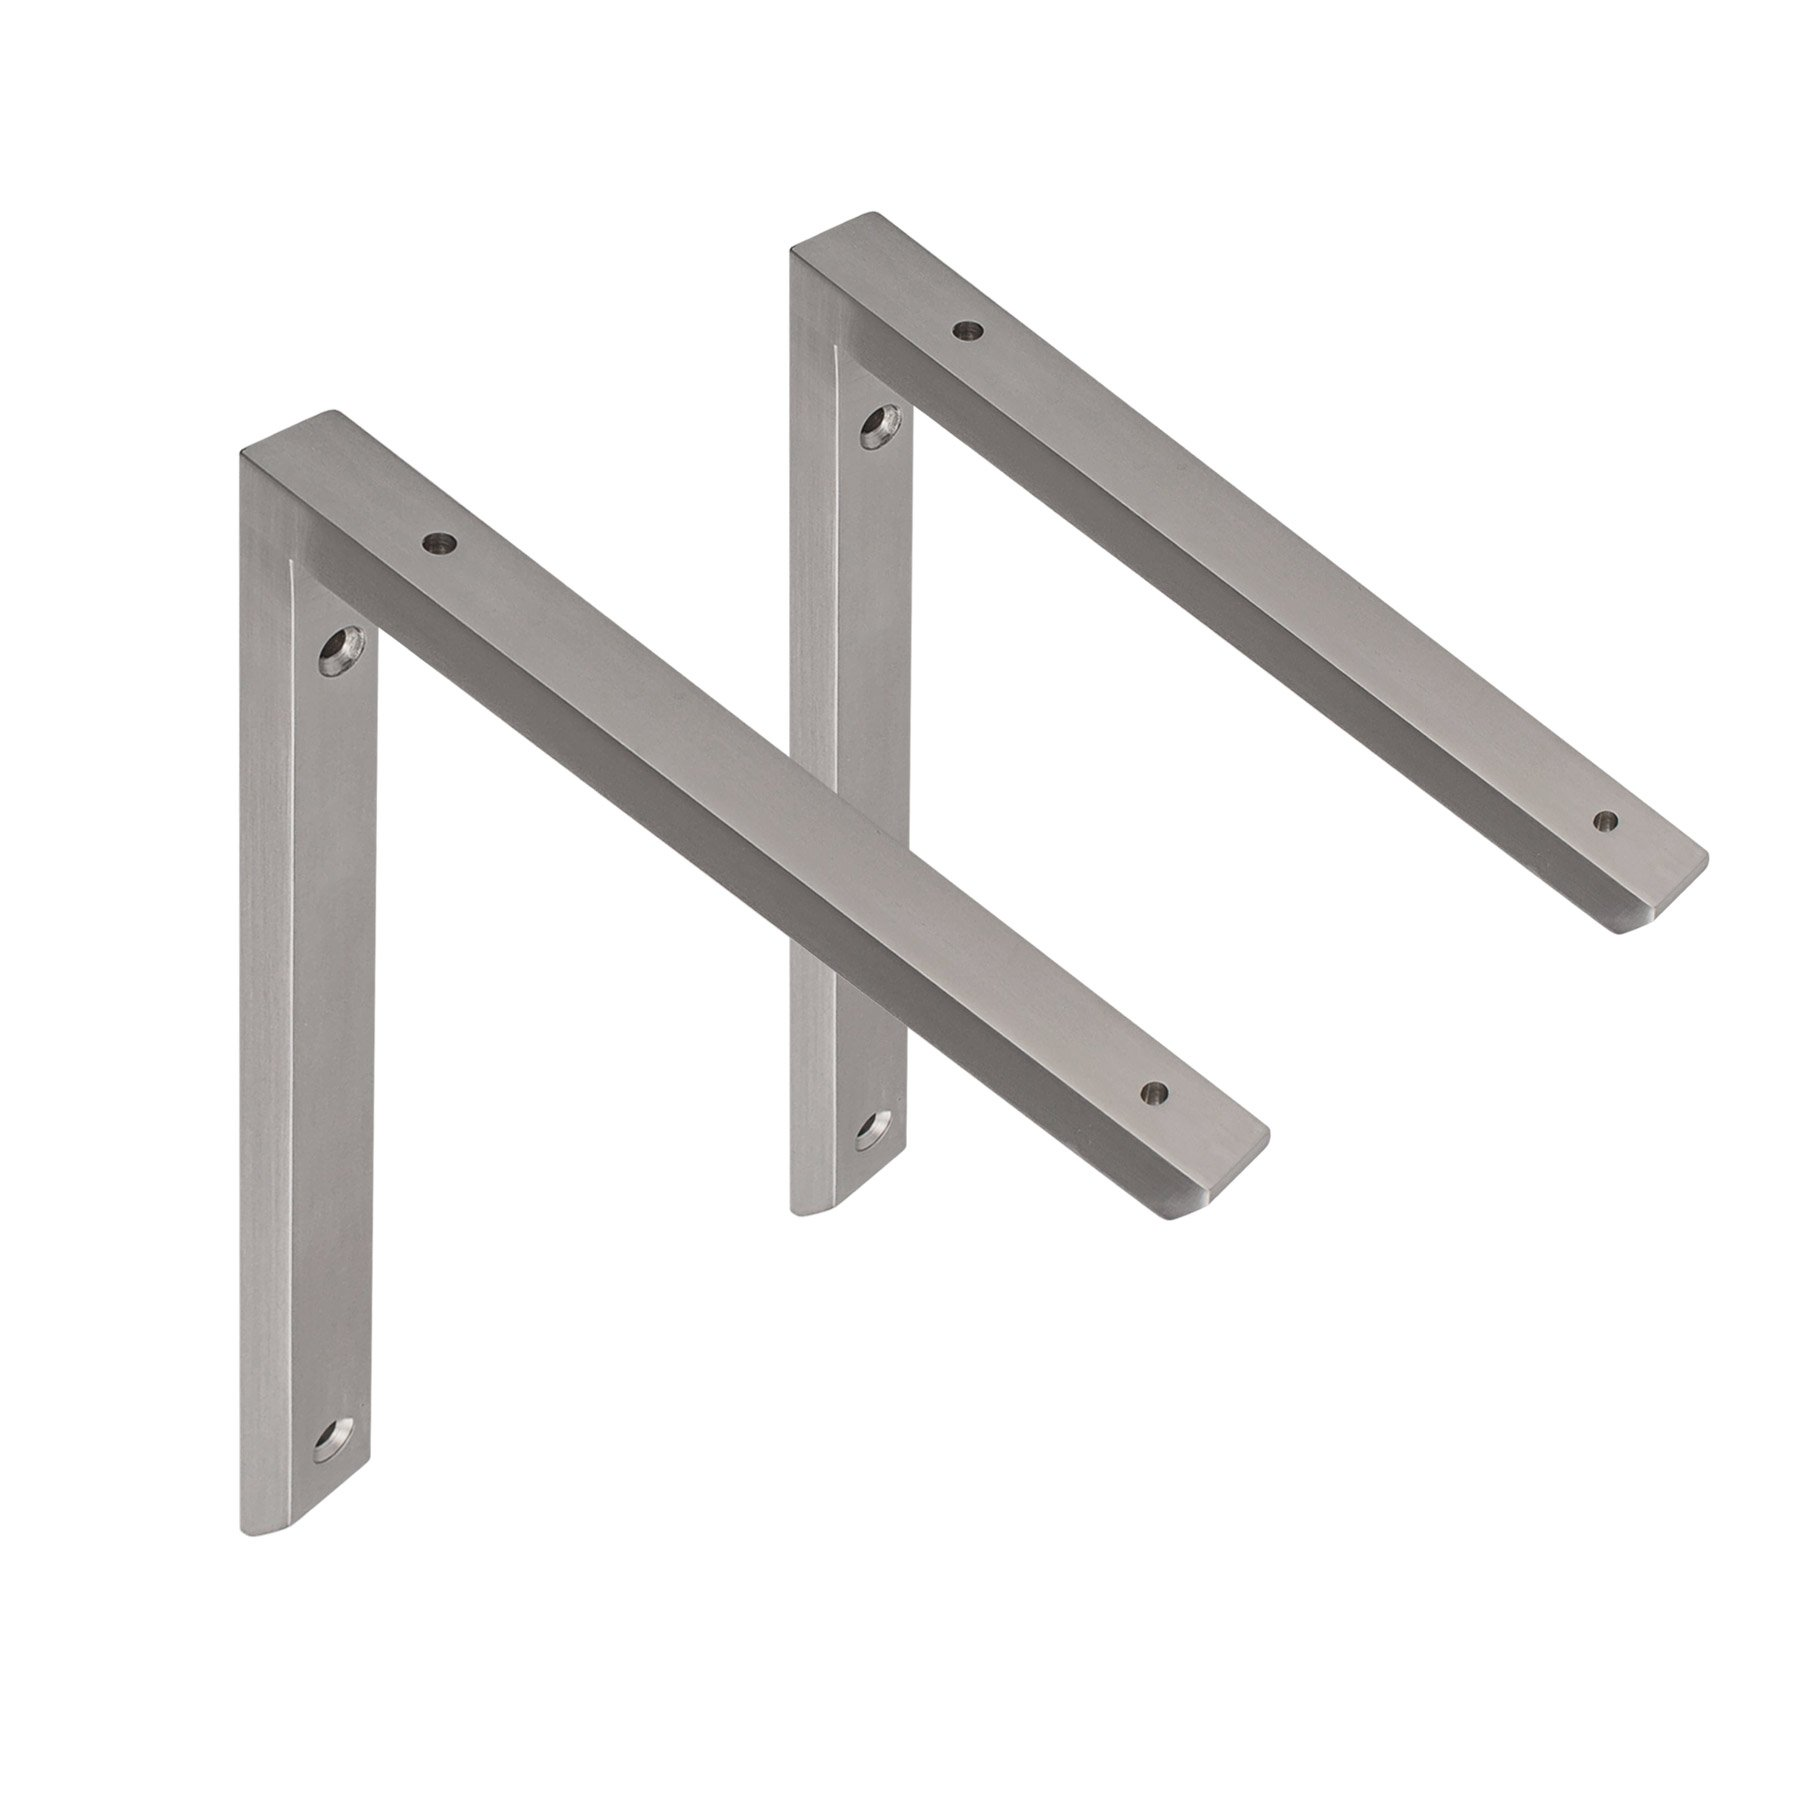 MAYKKE Morrison 10'' Shelf Bracket (Set of 2) Modern Stainless Steel Wall Mount Metal Ledge Hardware for Heavy Duty Storage, Brace Support 2 Sizes, 3 Colors Brushed Stainless Steel, OYA1110202 by Maykke (Image #1)